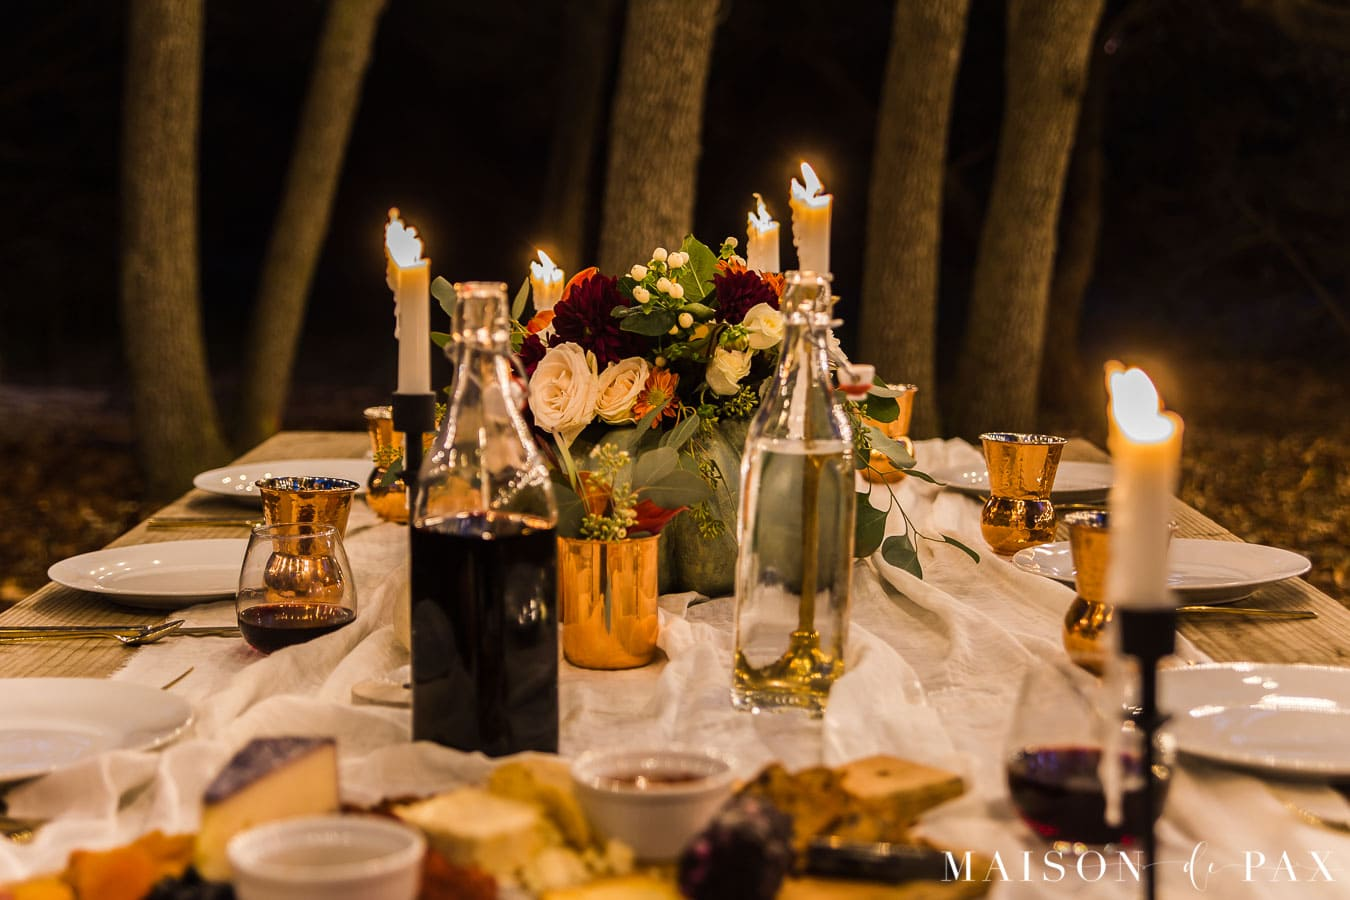 nighttime outdoor Thanksgiving table with taper candles | Maison de Pax